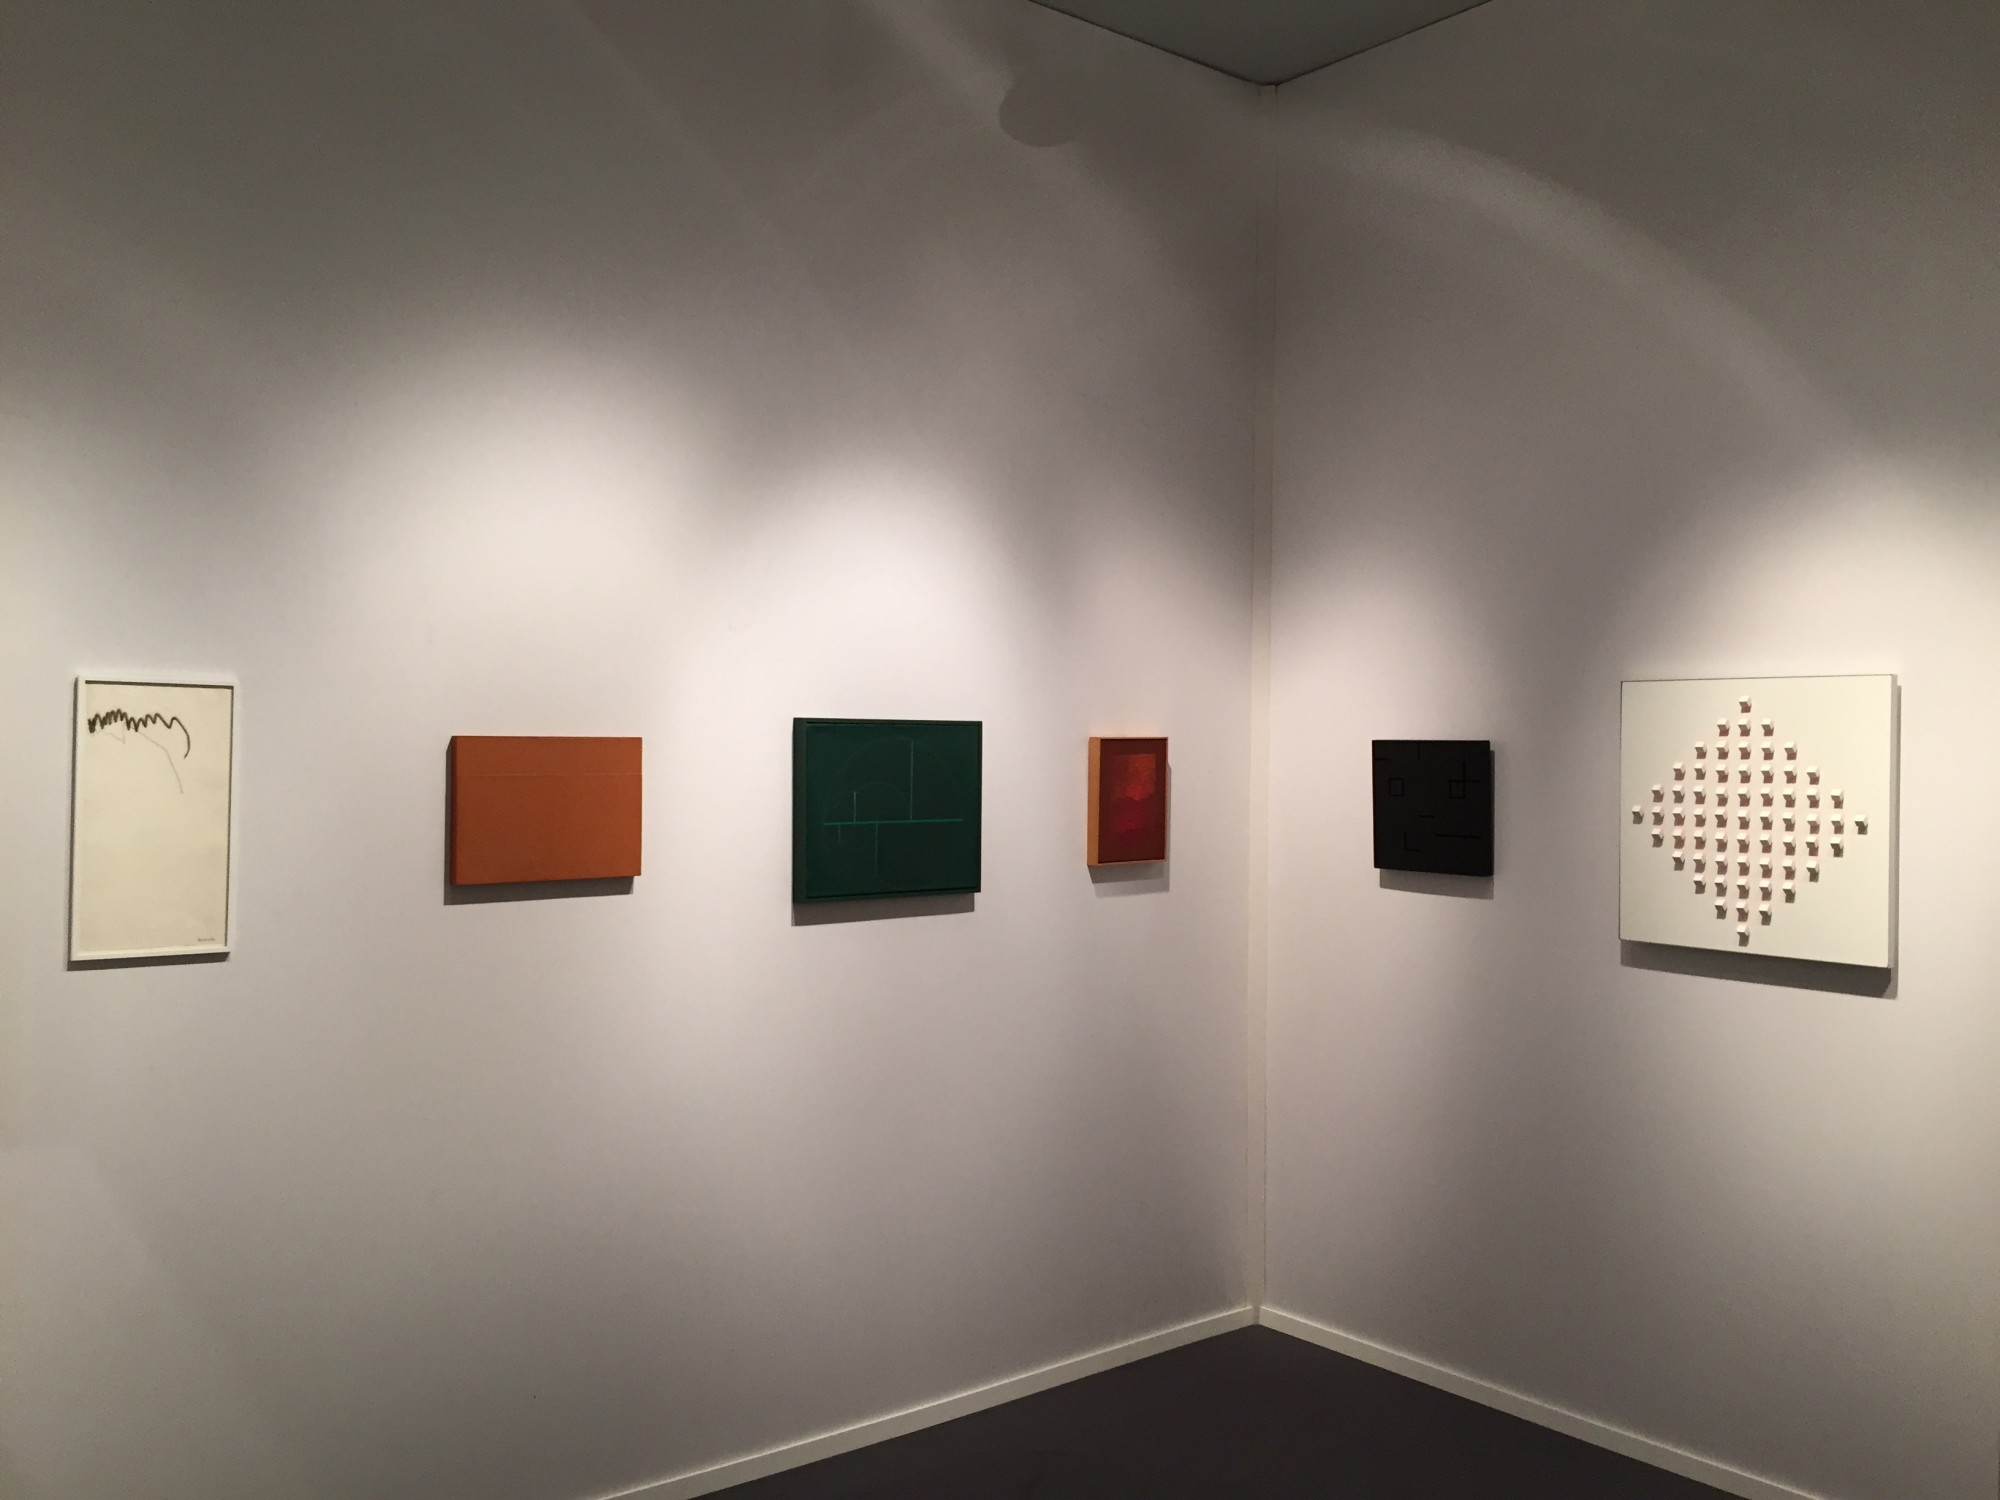 """<span class=""""link fancybox-details-link""""><a href=""""/exhibitions/315/works/image_standalone1562/"""">View Detail Page</a></span><p>TEFAF 2015, INSTALLATION VIEW</p>"""